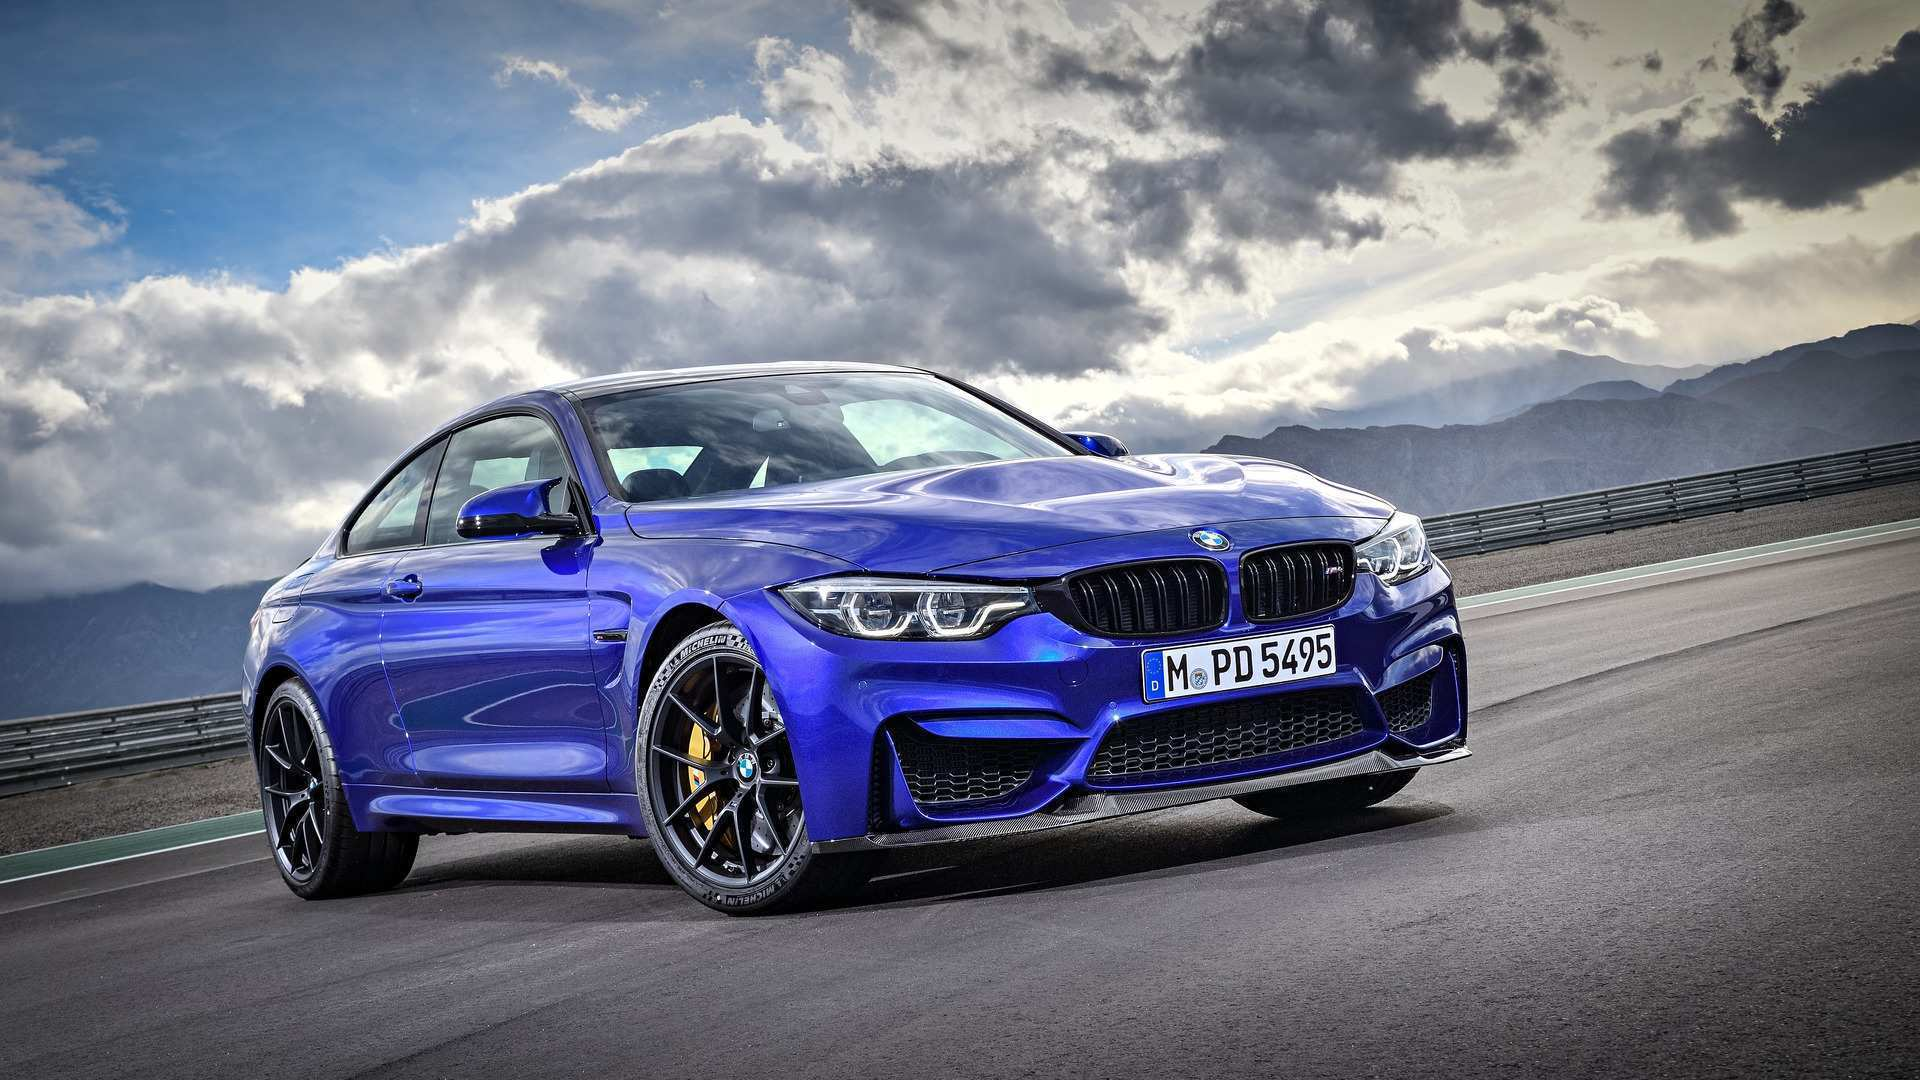 68 New 2020 BMW M4 Gts History by 2020 BMW M4 Gts